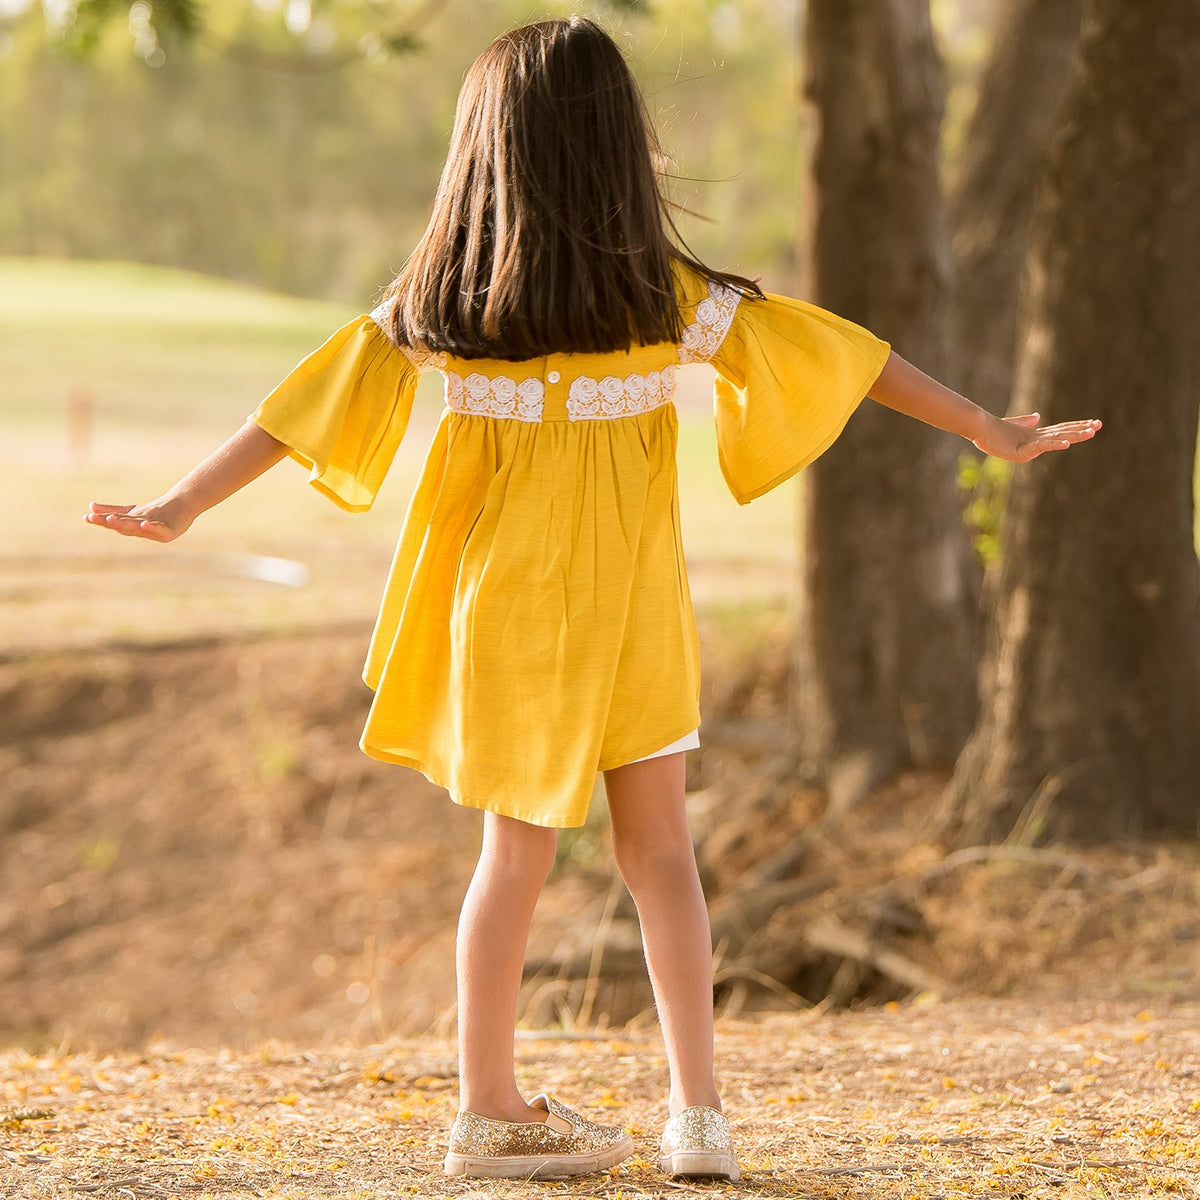 Yellow High Low Top with White Shorts set